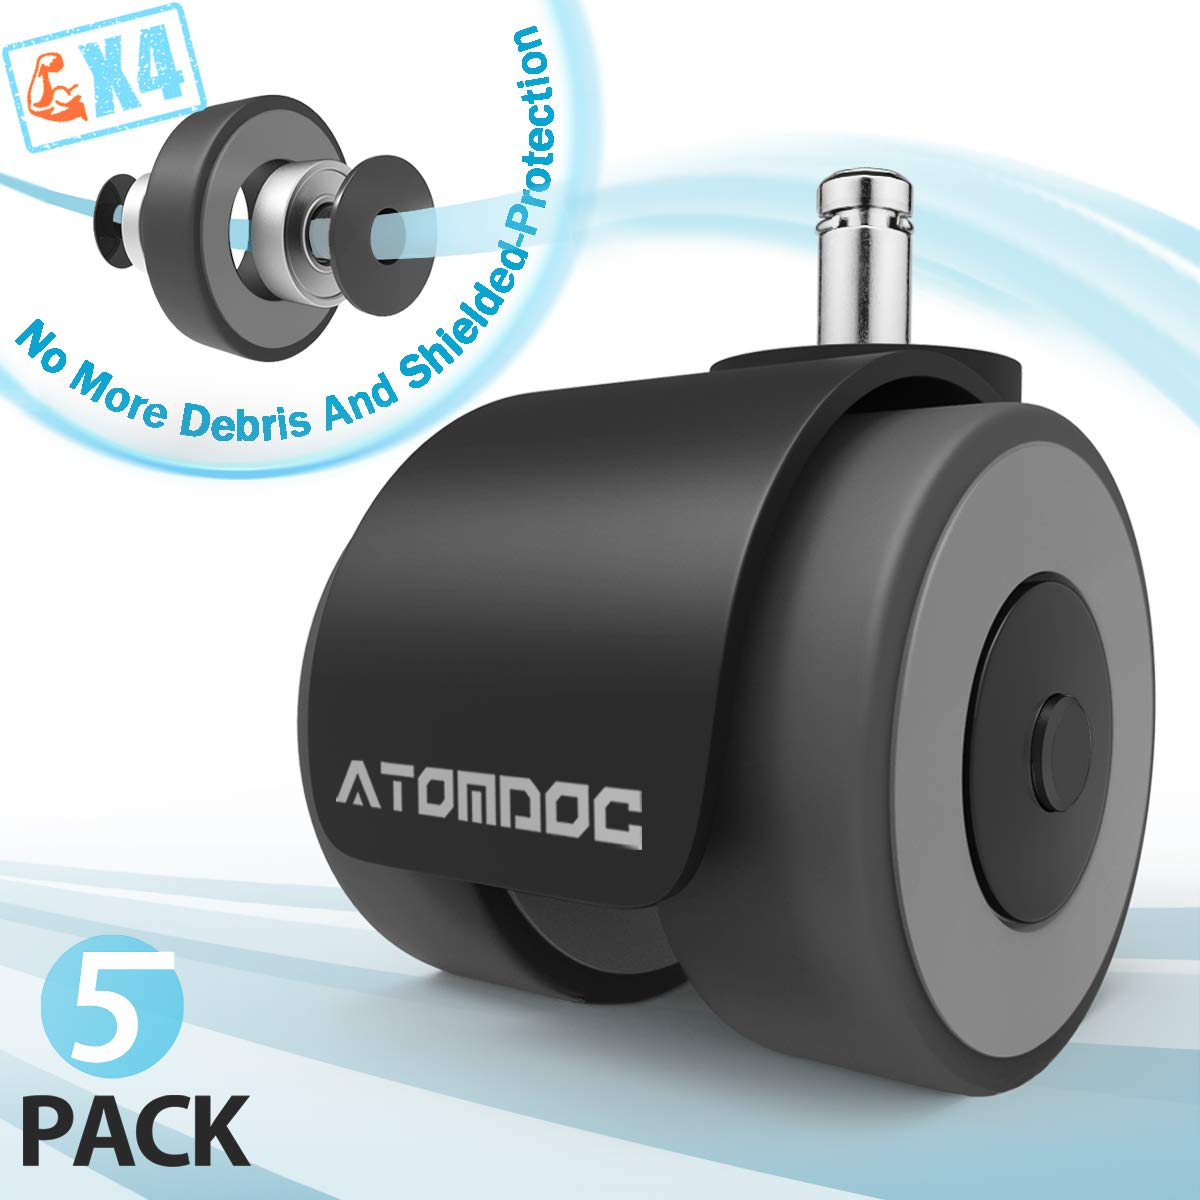 ATOMDOC Office Chair Caster Wheels, Newly Revolutionary Quadruple Ball Bearing Design,Heavy Duty & Safe Protection for All Floors Including Hardwood, Set of 5 by ATOMDOC